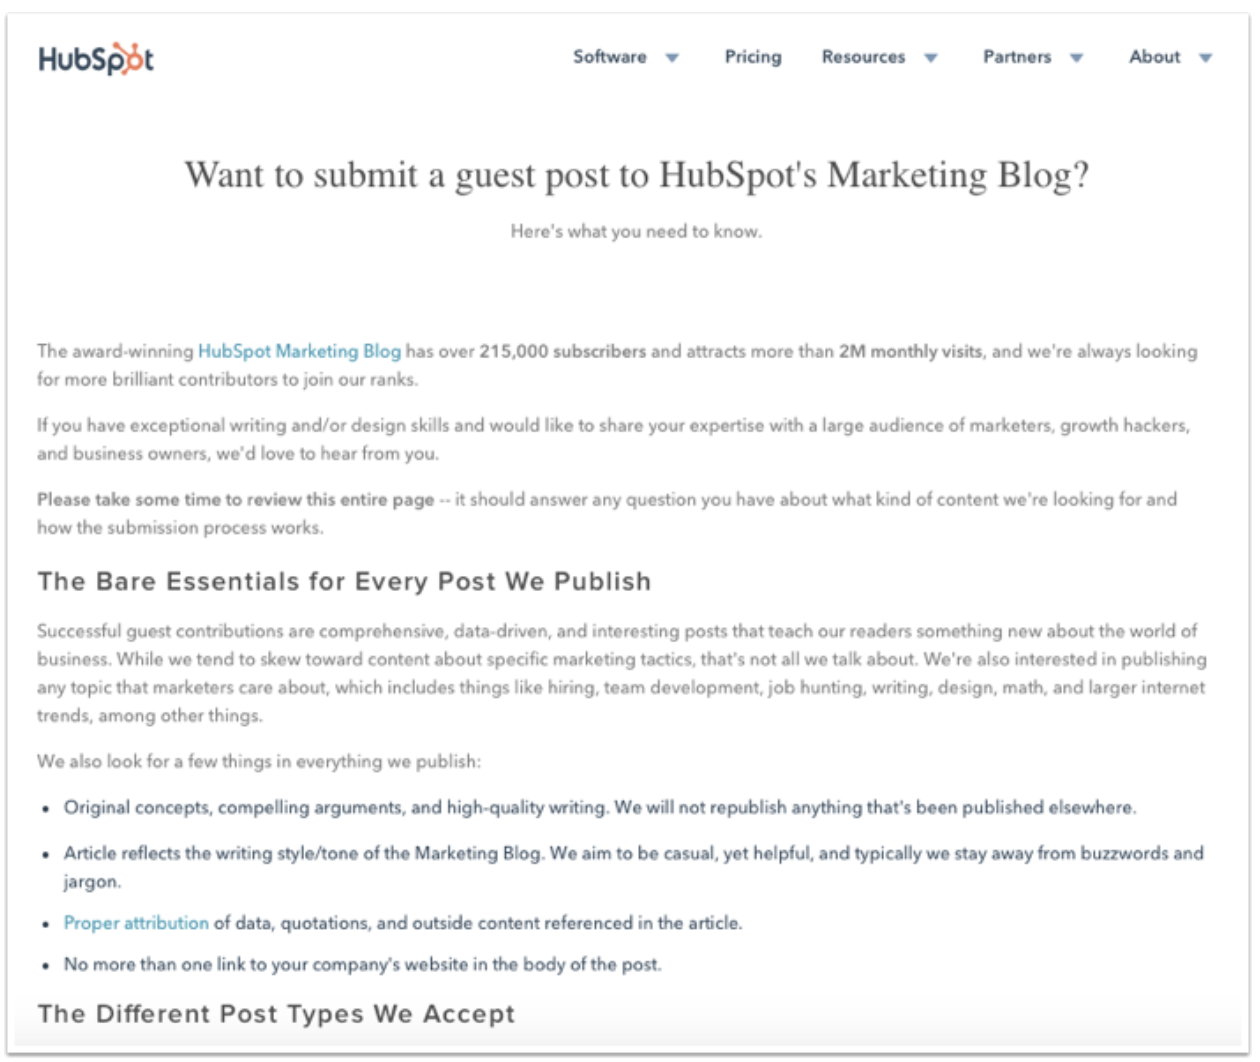 HubSpot's Guest Blogging Guidelines